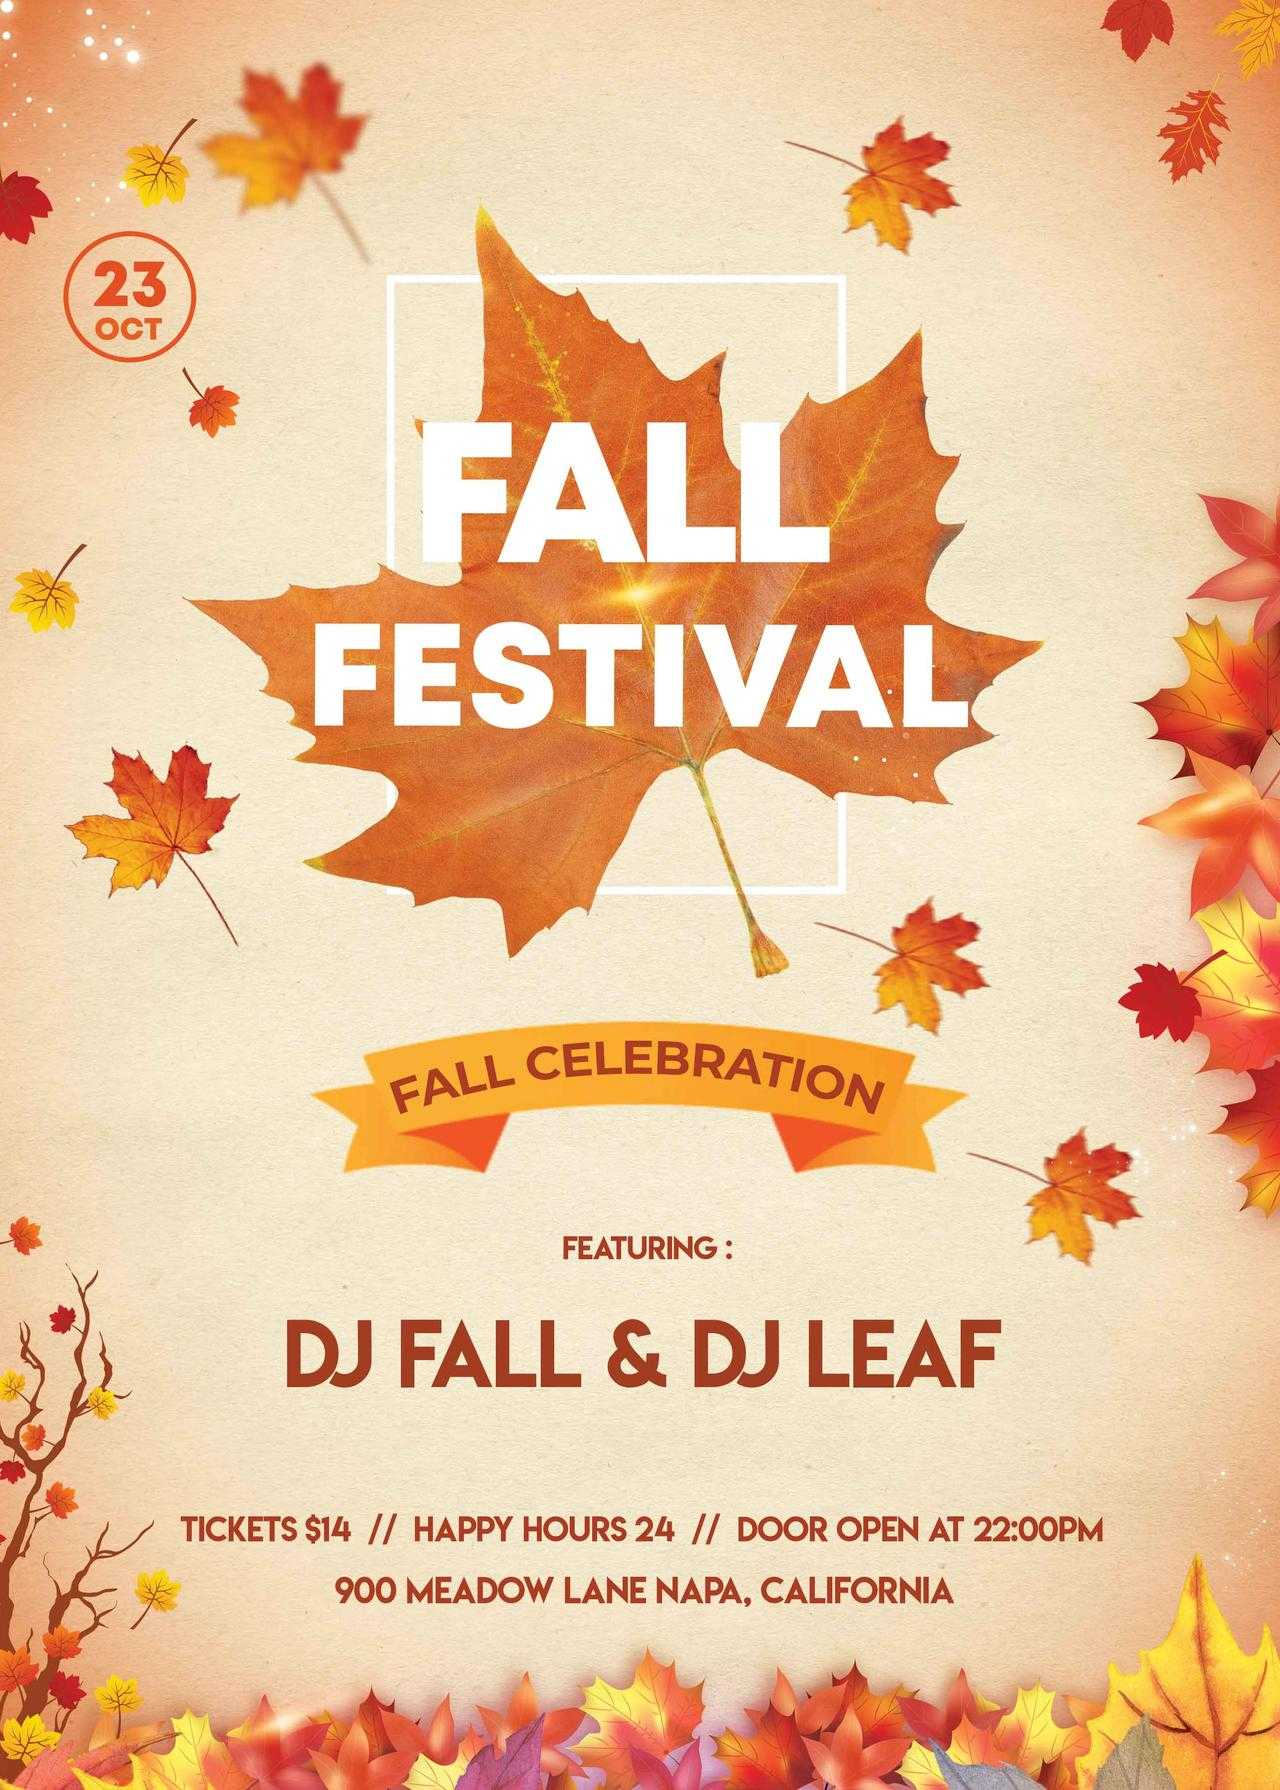 002 Fall Festival Flyer Template Free Psdstudioflyers Pertaining To Fall Festival Flyer Templates Free